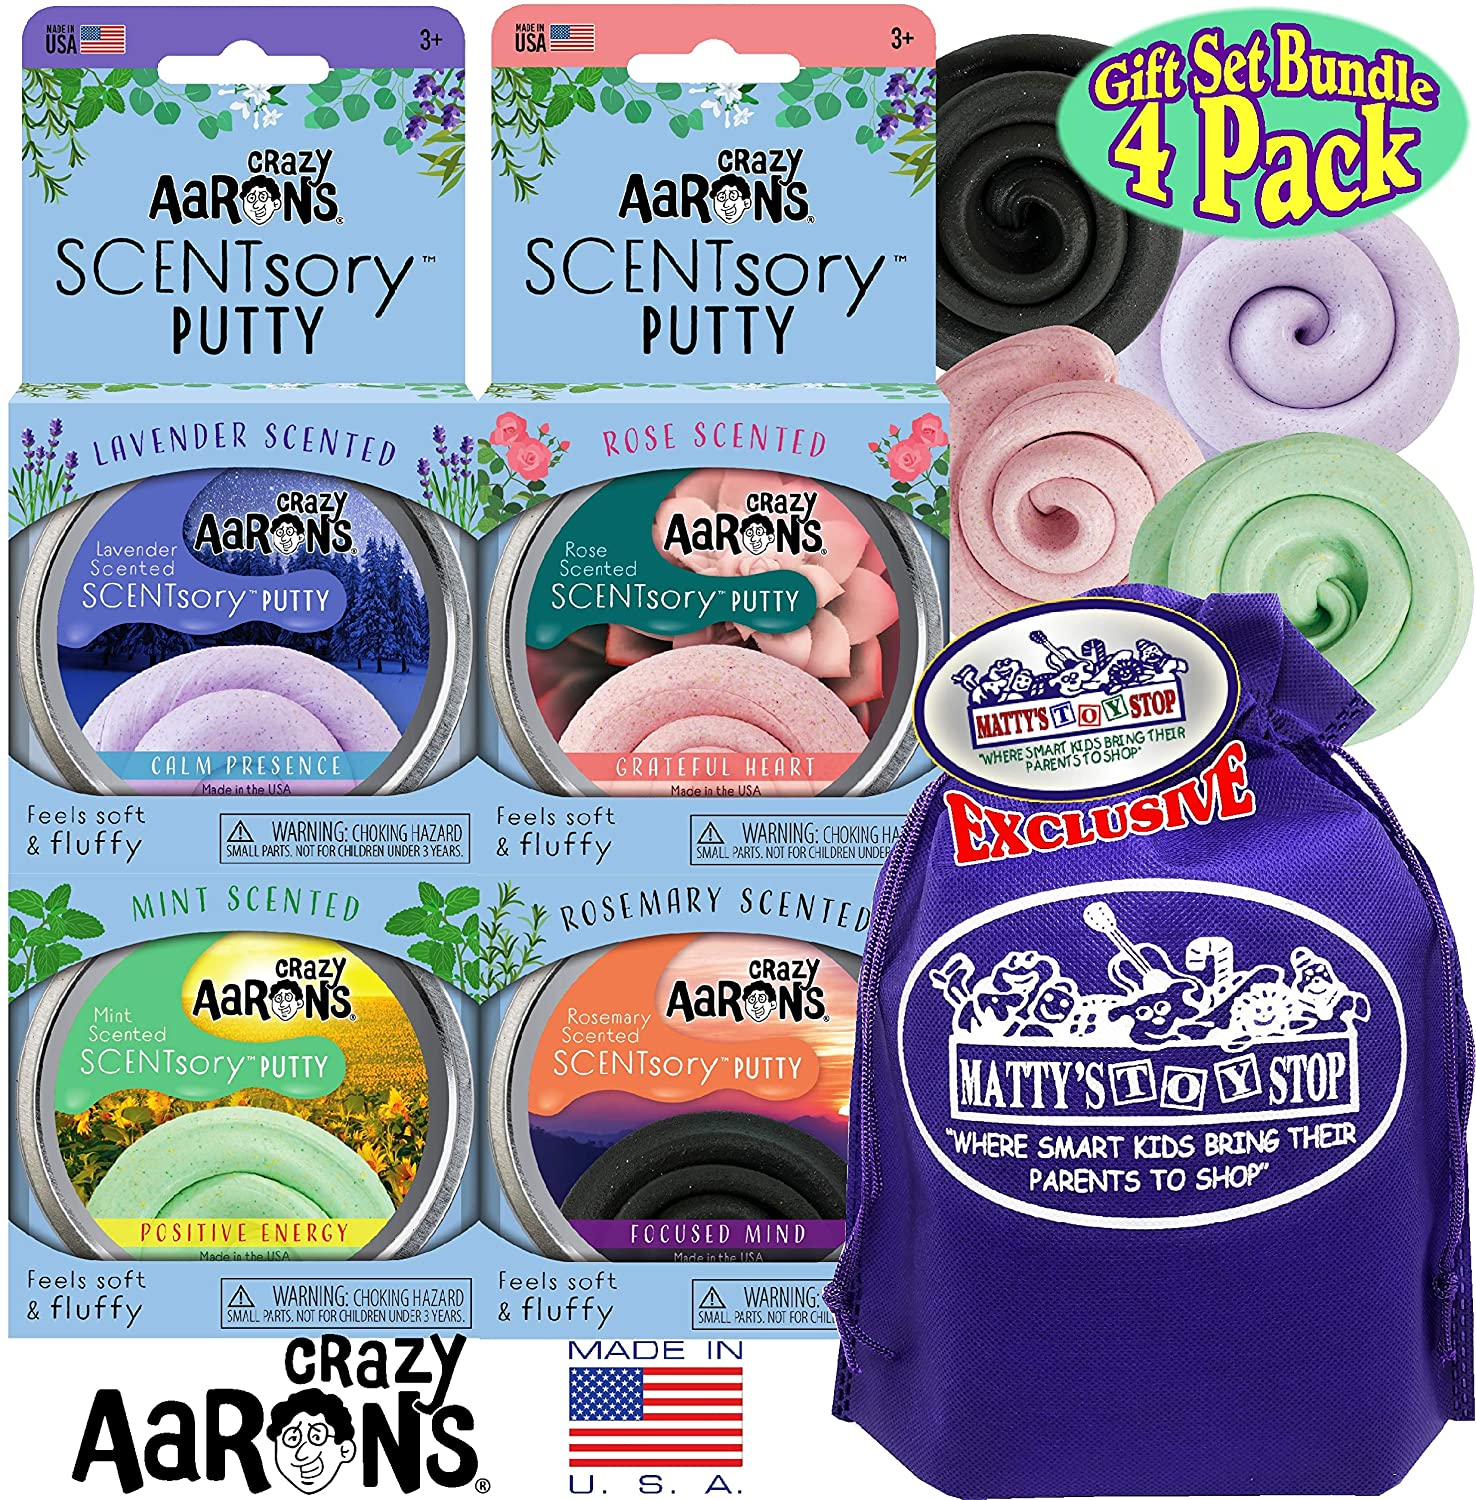 Crazy Aaron's Thinking Putty Aromatherapy SCENTSory Tins Gift Set Bundle Featuring Calm Presence, Positive Energy, Grateful Heart, Focused Mind & Bonus Matty's Toy Stop Bag - 4 Pack (20g Each)